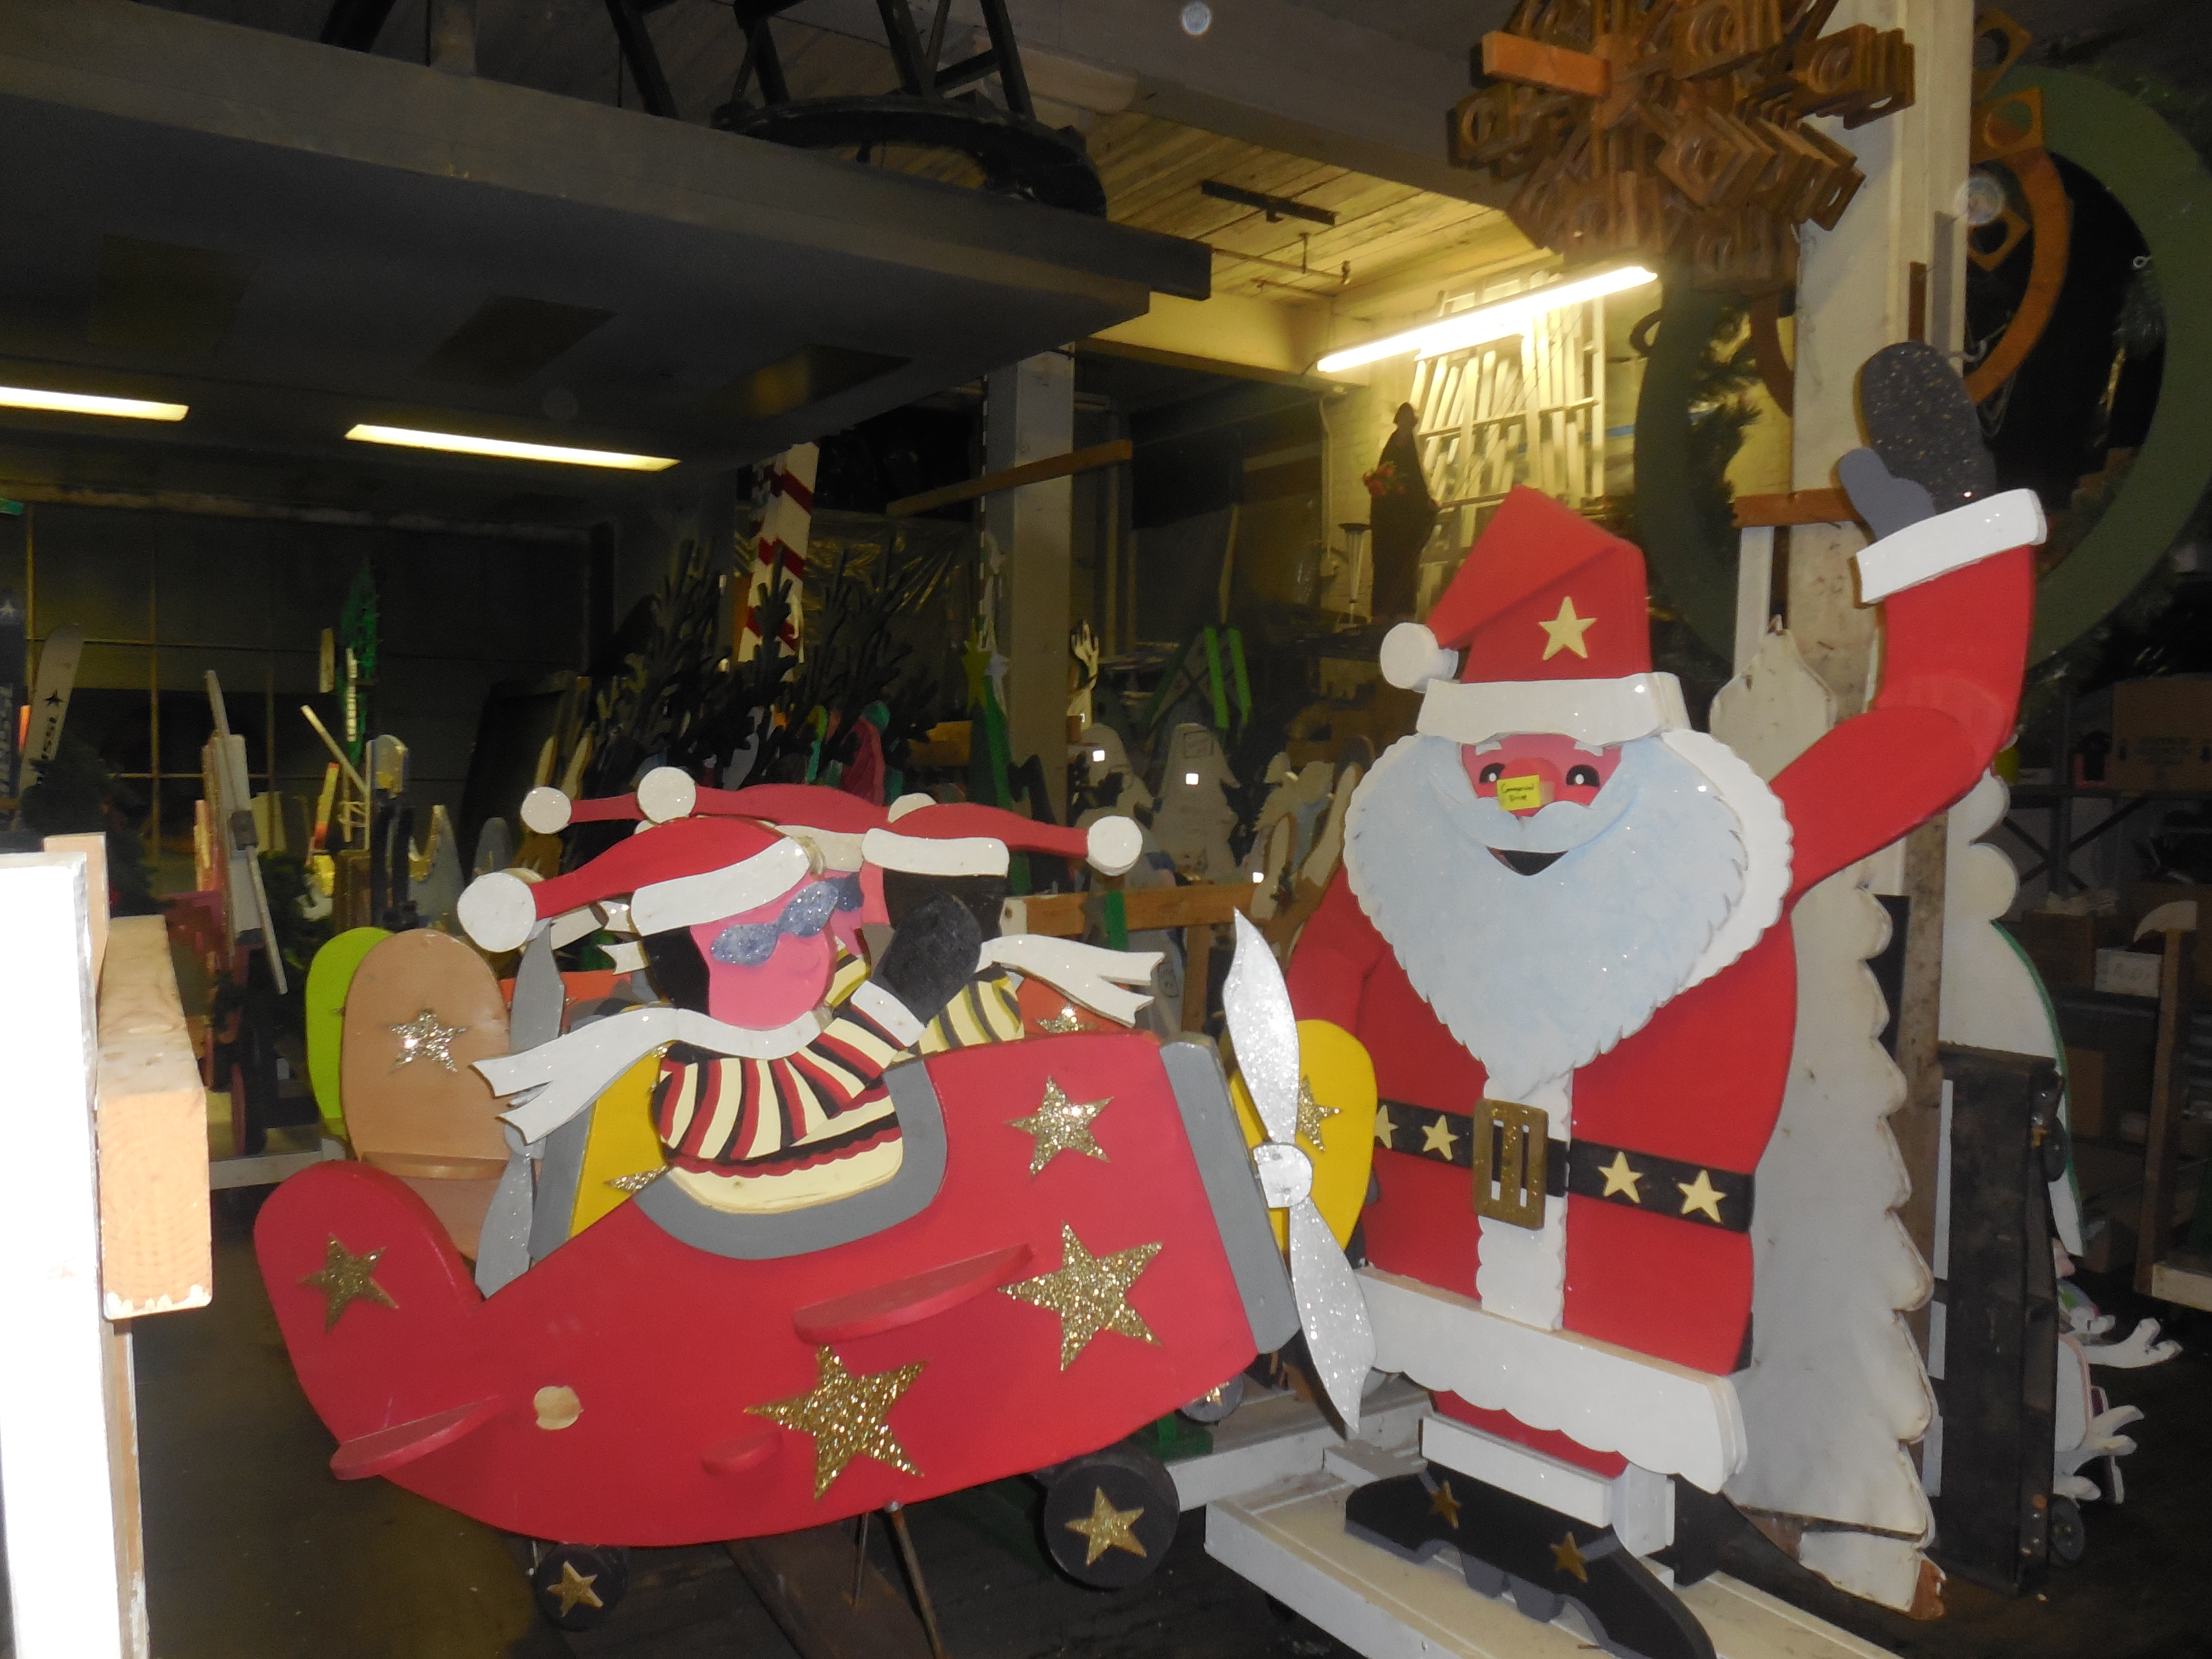 Southbridge Holiday Visions Seeks Volunteers for Decorating